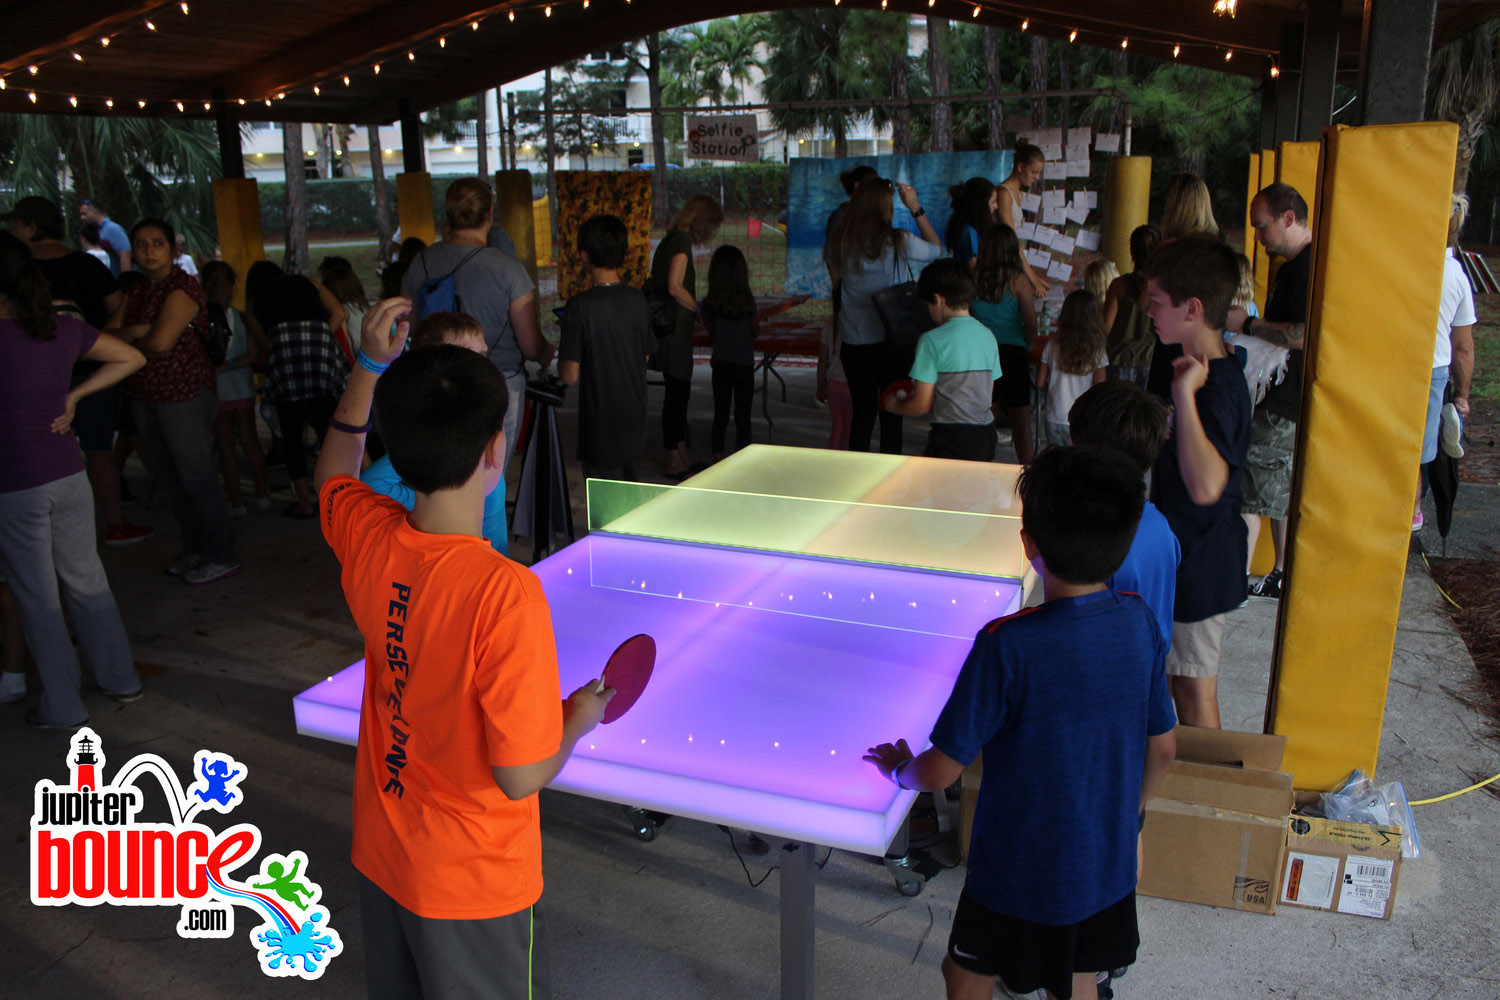 ledpingpongtable-tabletennis-partyrental-eventrental-birthdayparty-competitivegames-jupiterbounce-westpalmbounce-palmbeachcounty.jpg